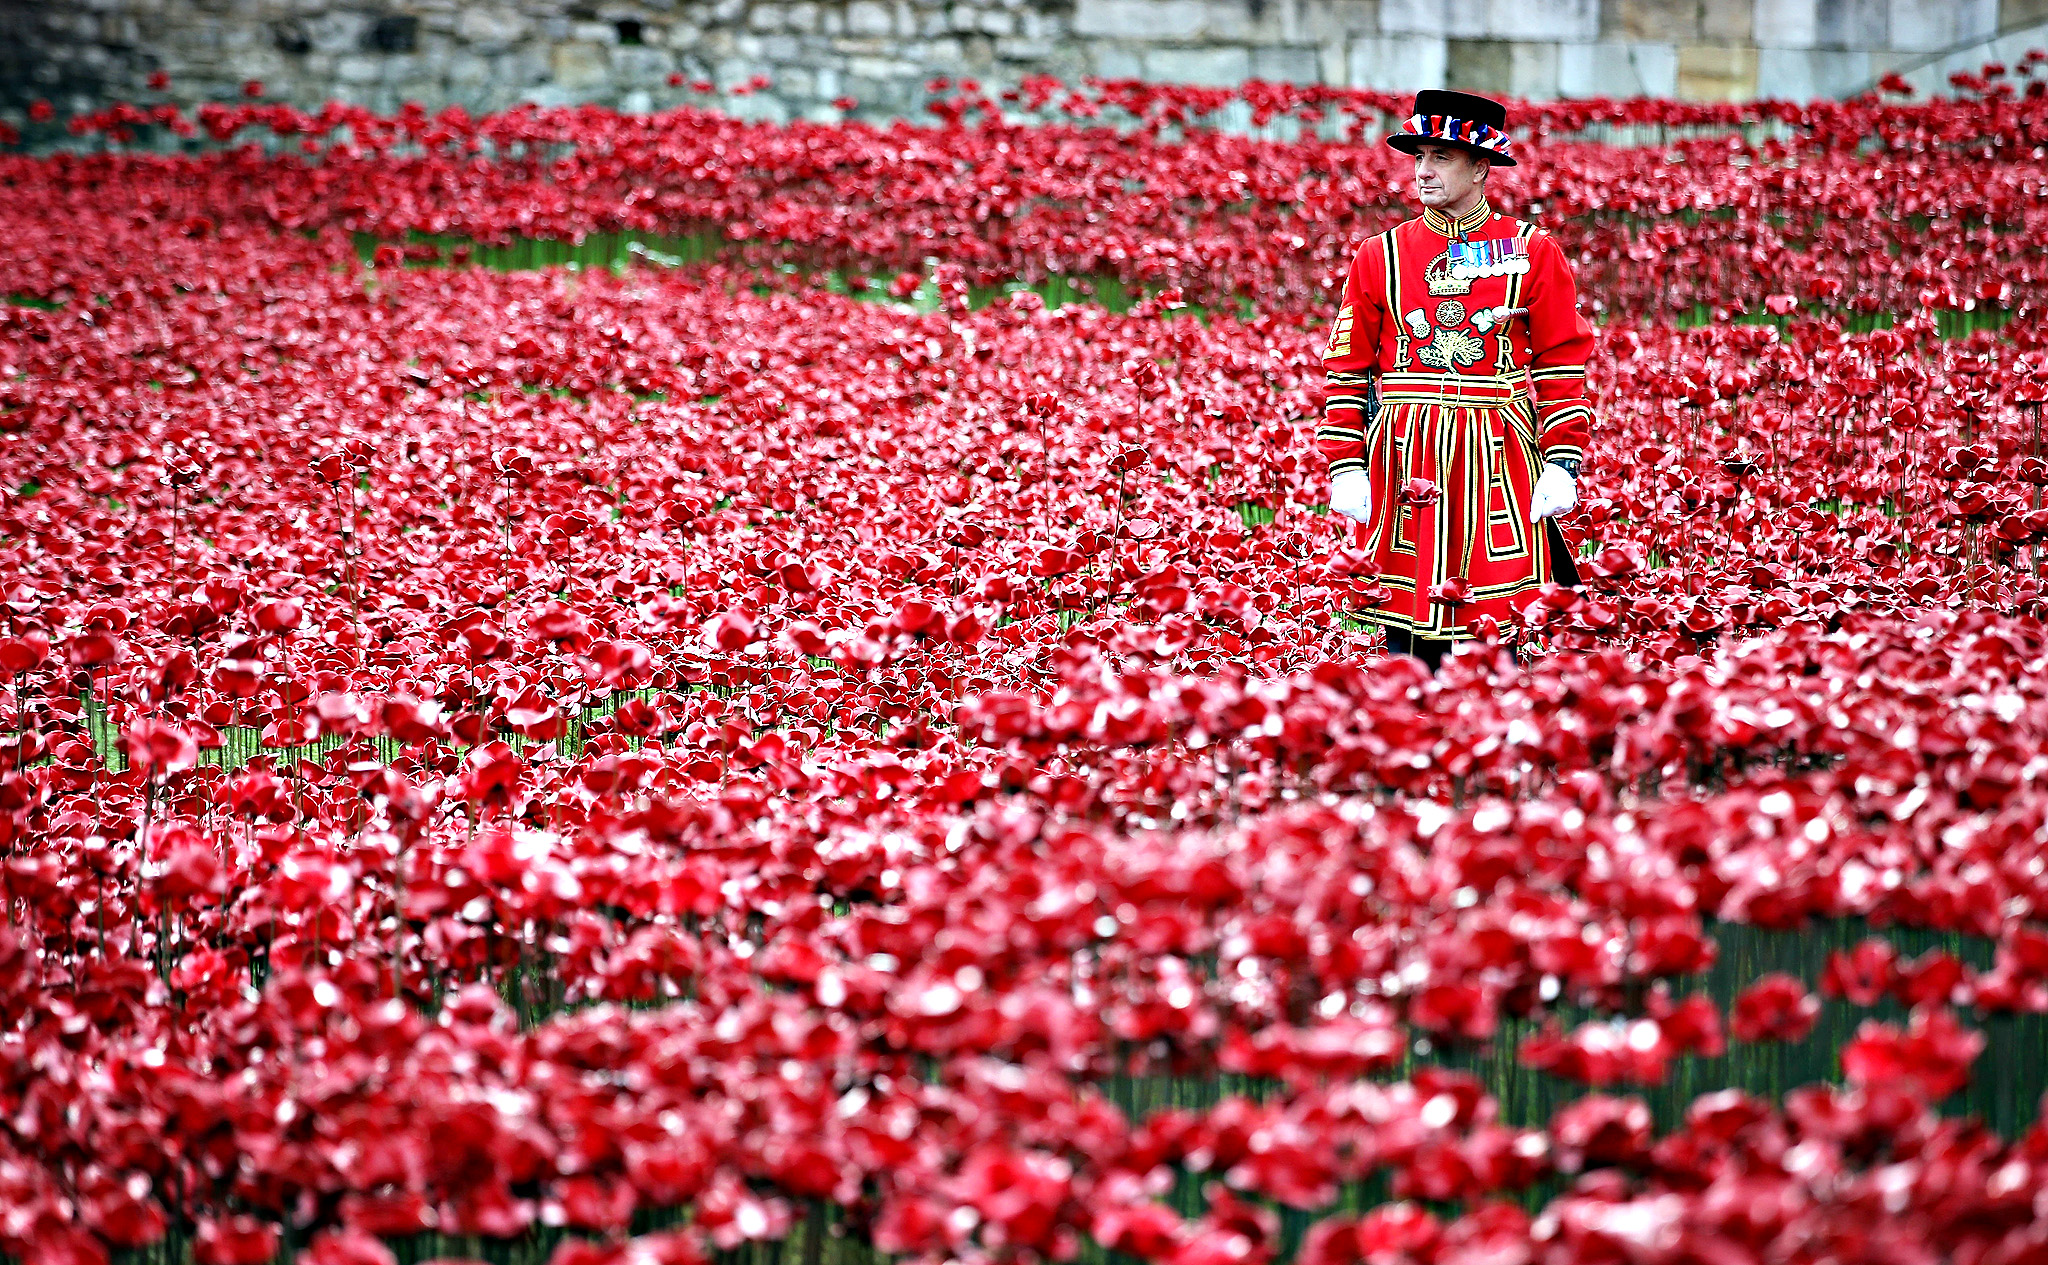 A Yeomen Warder awaits the placing of the last ceramic poppy in the moat of Tower of London to mark Armistice Day, on November 11, 2014 in London, England. The installation 'Blood Swept Lands and Seas of Red' by artists Paul Cummins and Tom Piper consists of 888,246 ceramic poppies - representing each of the commonwealth servicemen and women killed in the first world war.